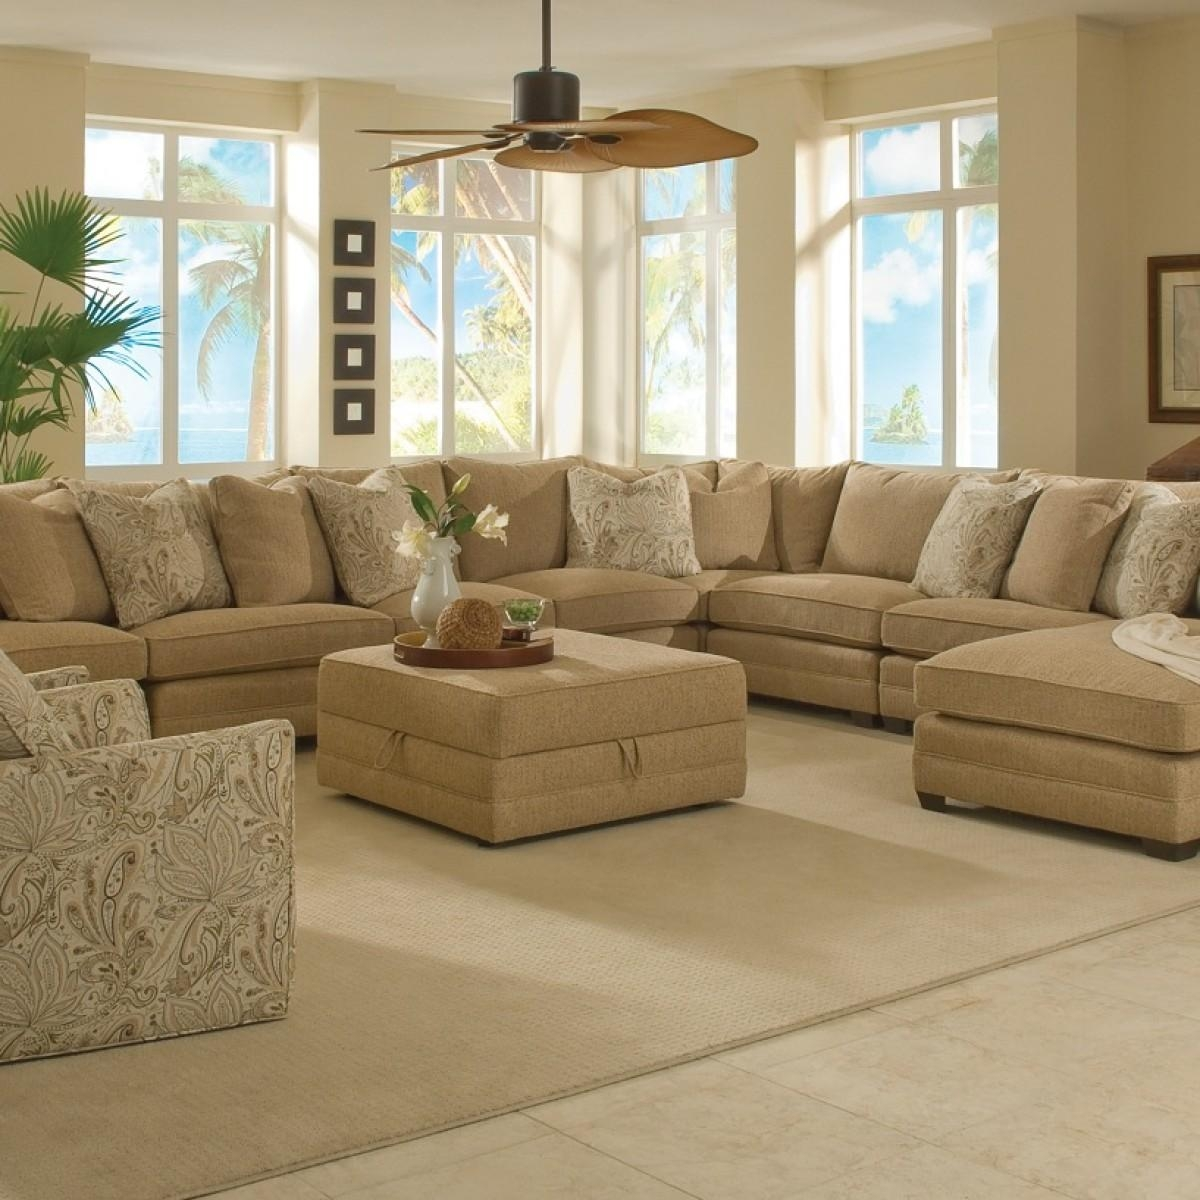 Featured Image of Extra Large Sectional Sofas